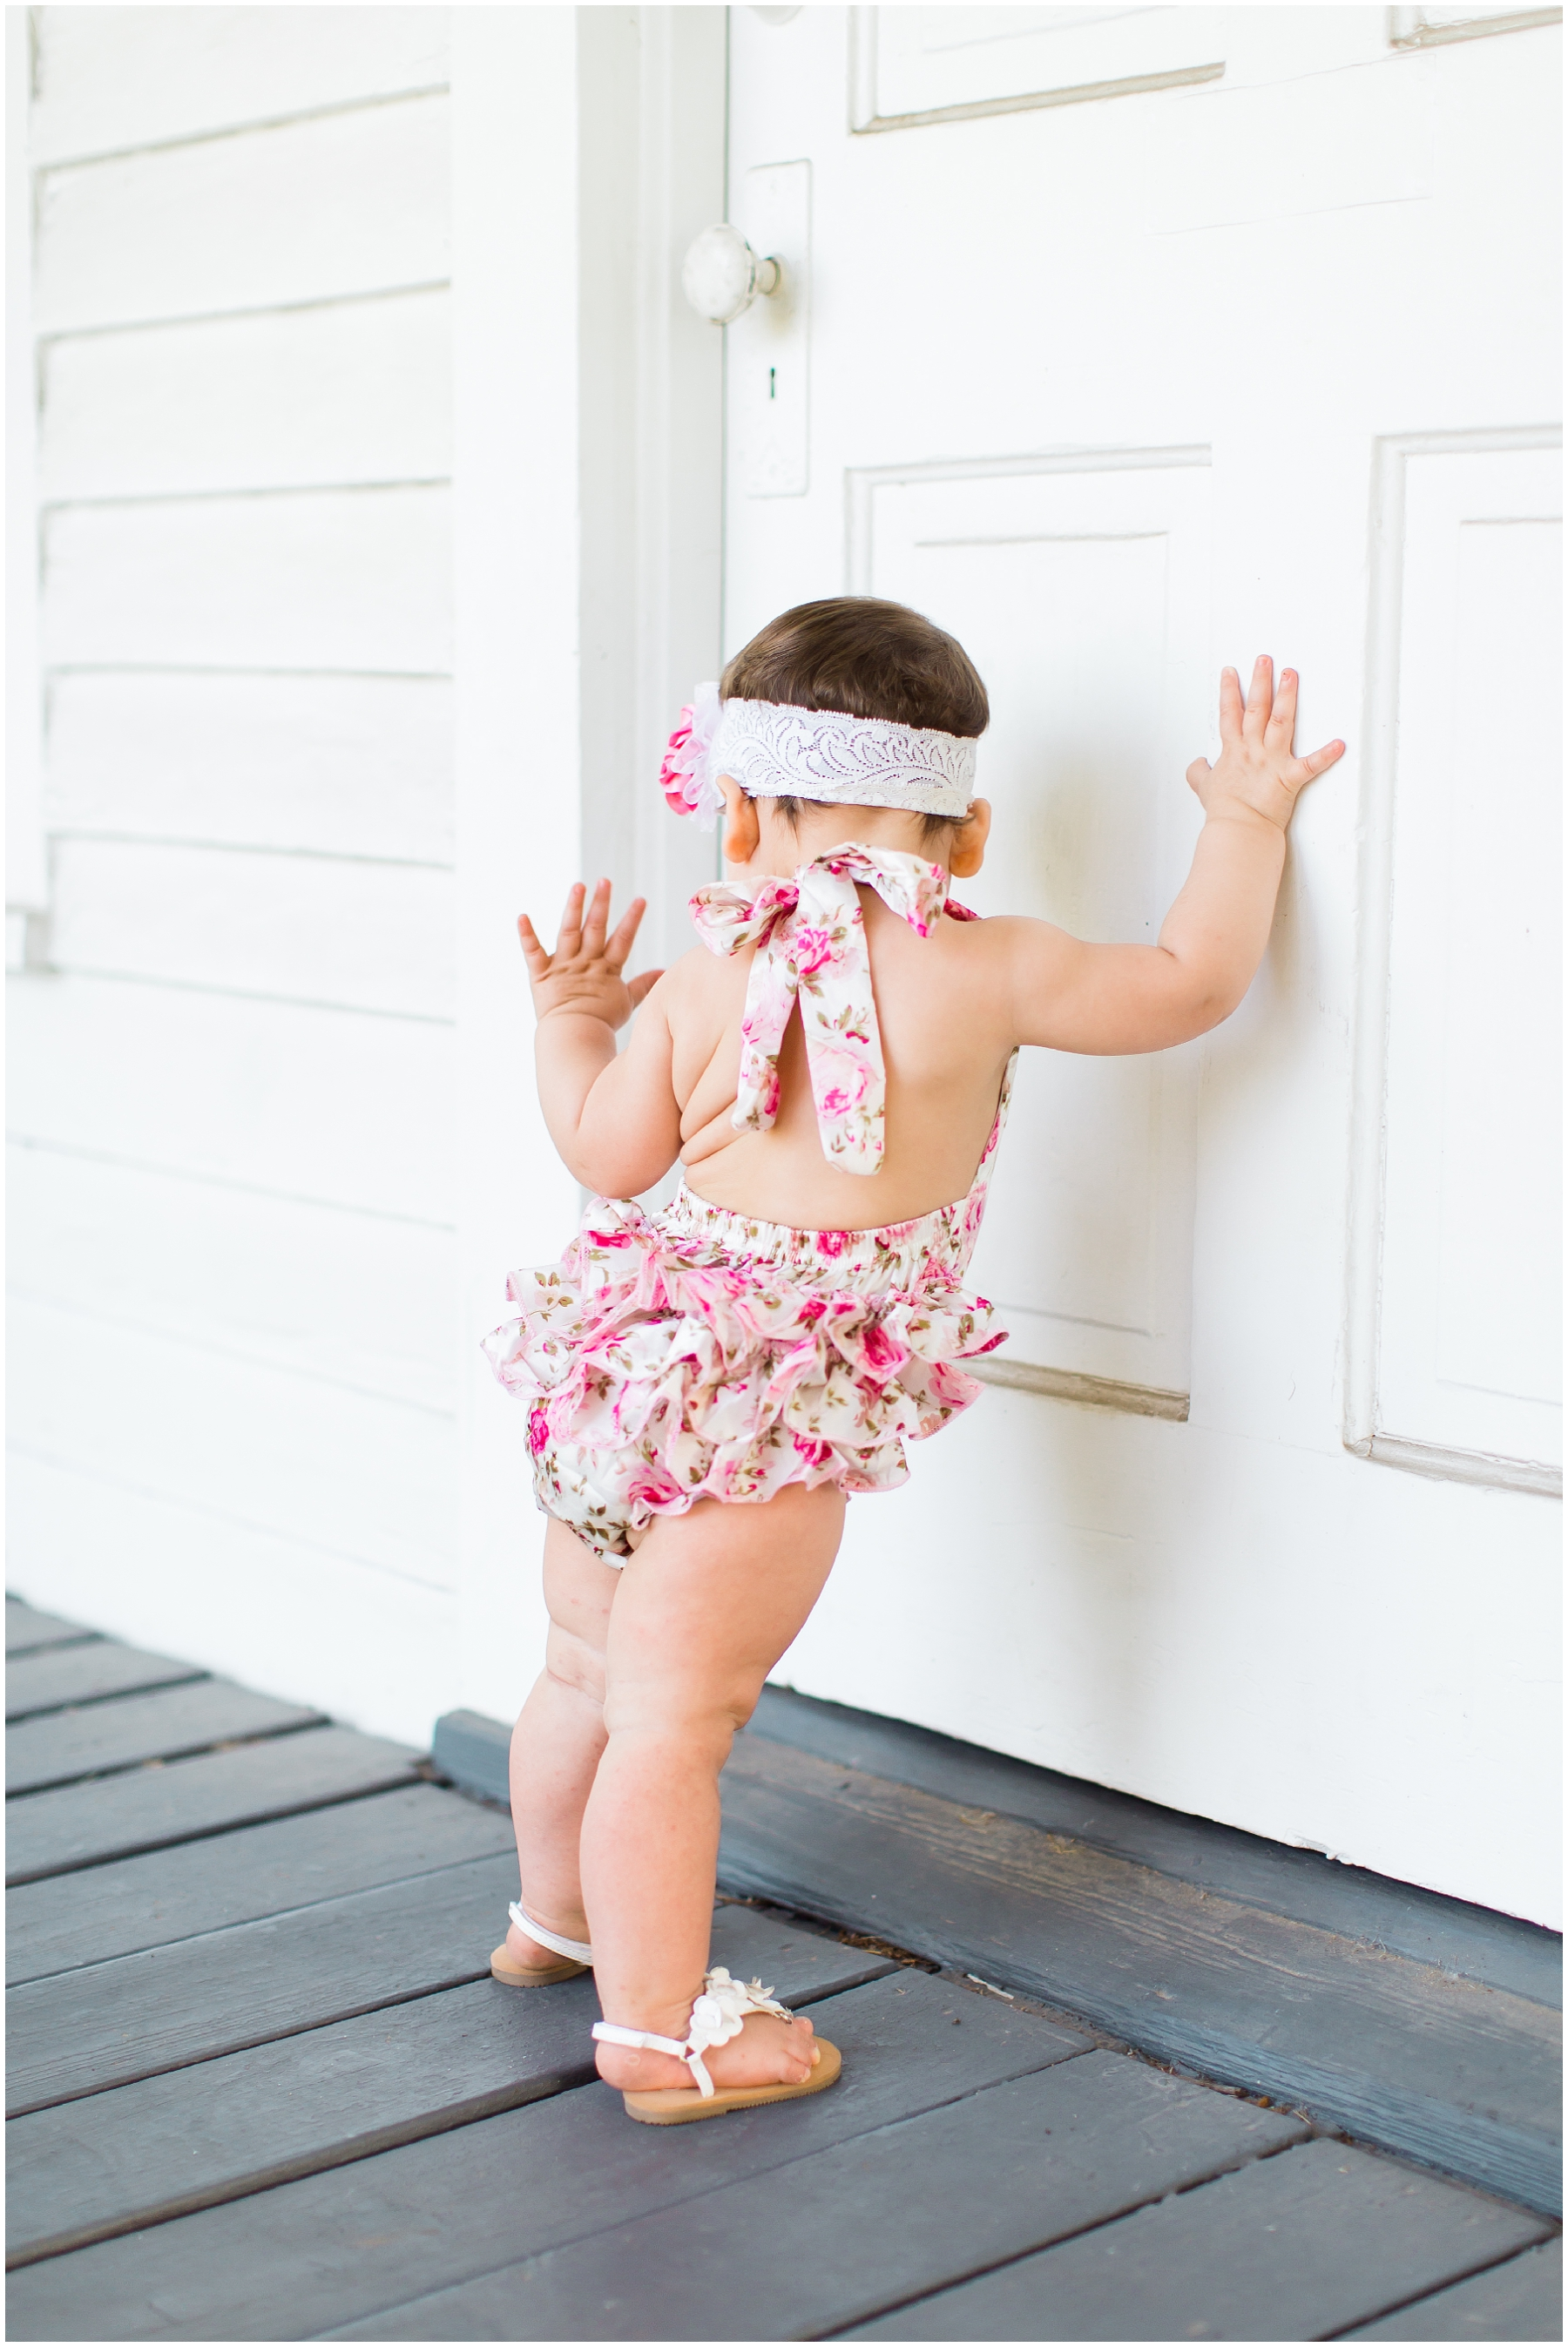 Katy Tx Child Photography - 1 year old 15